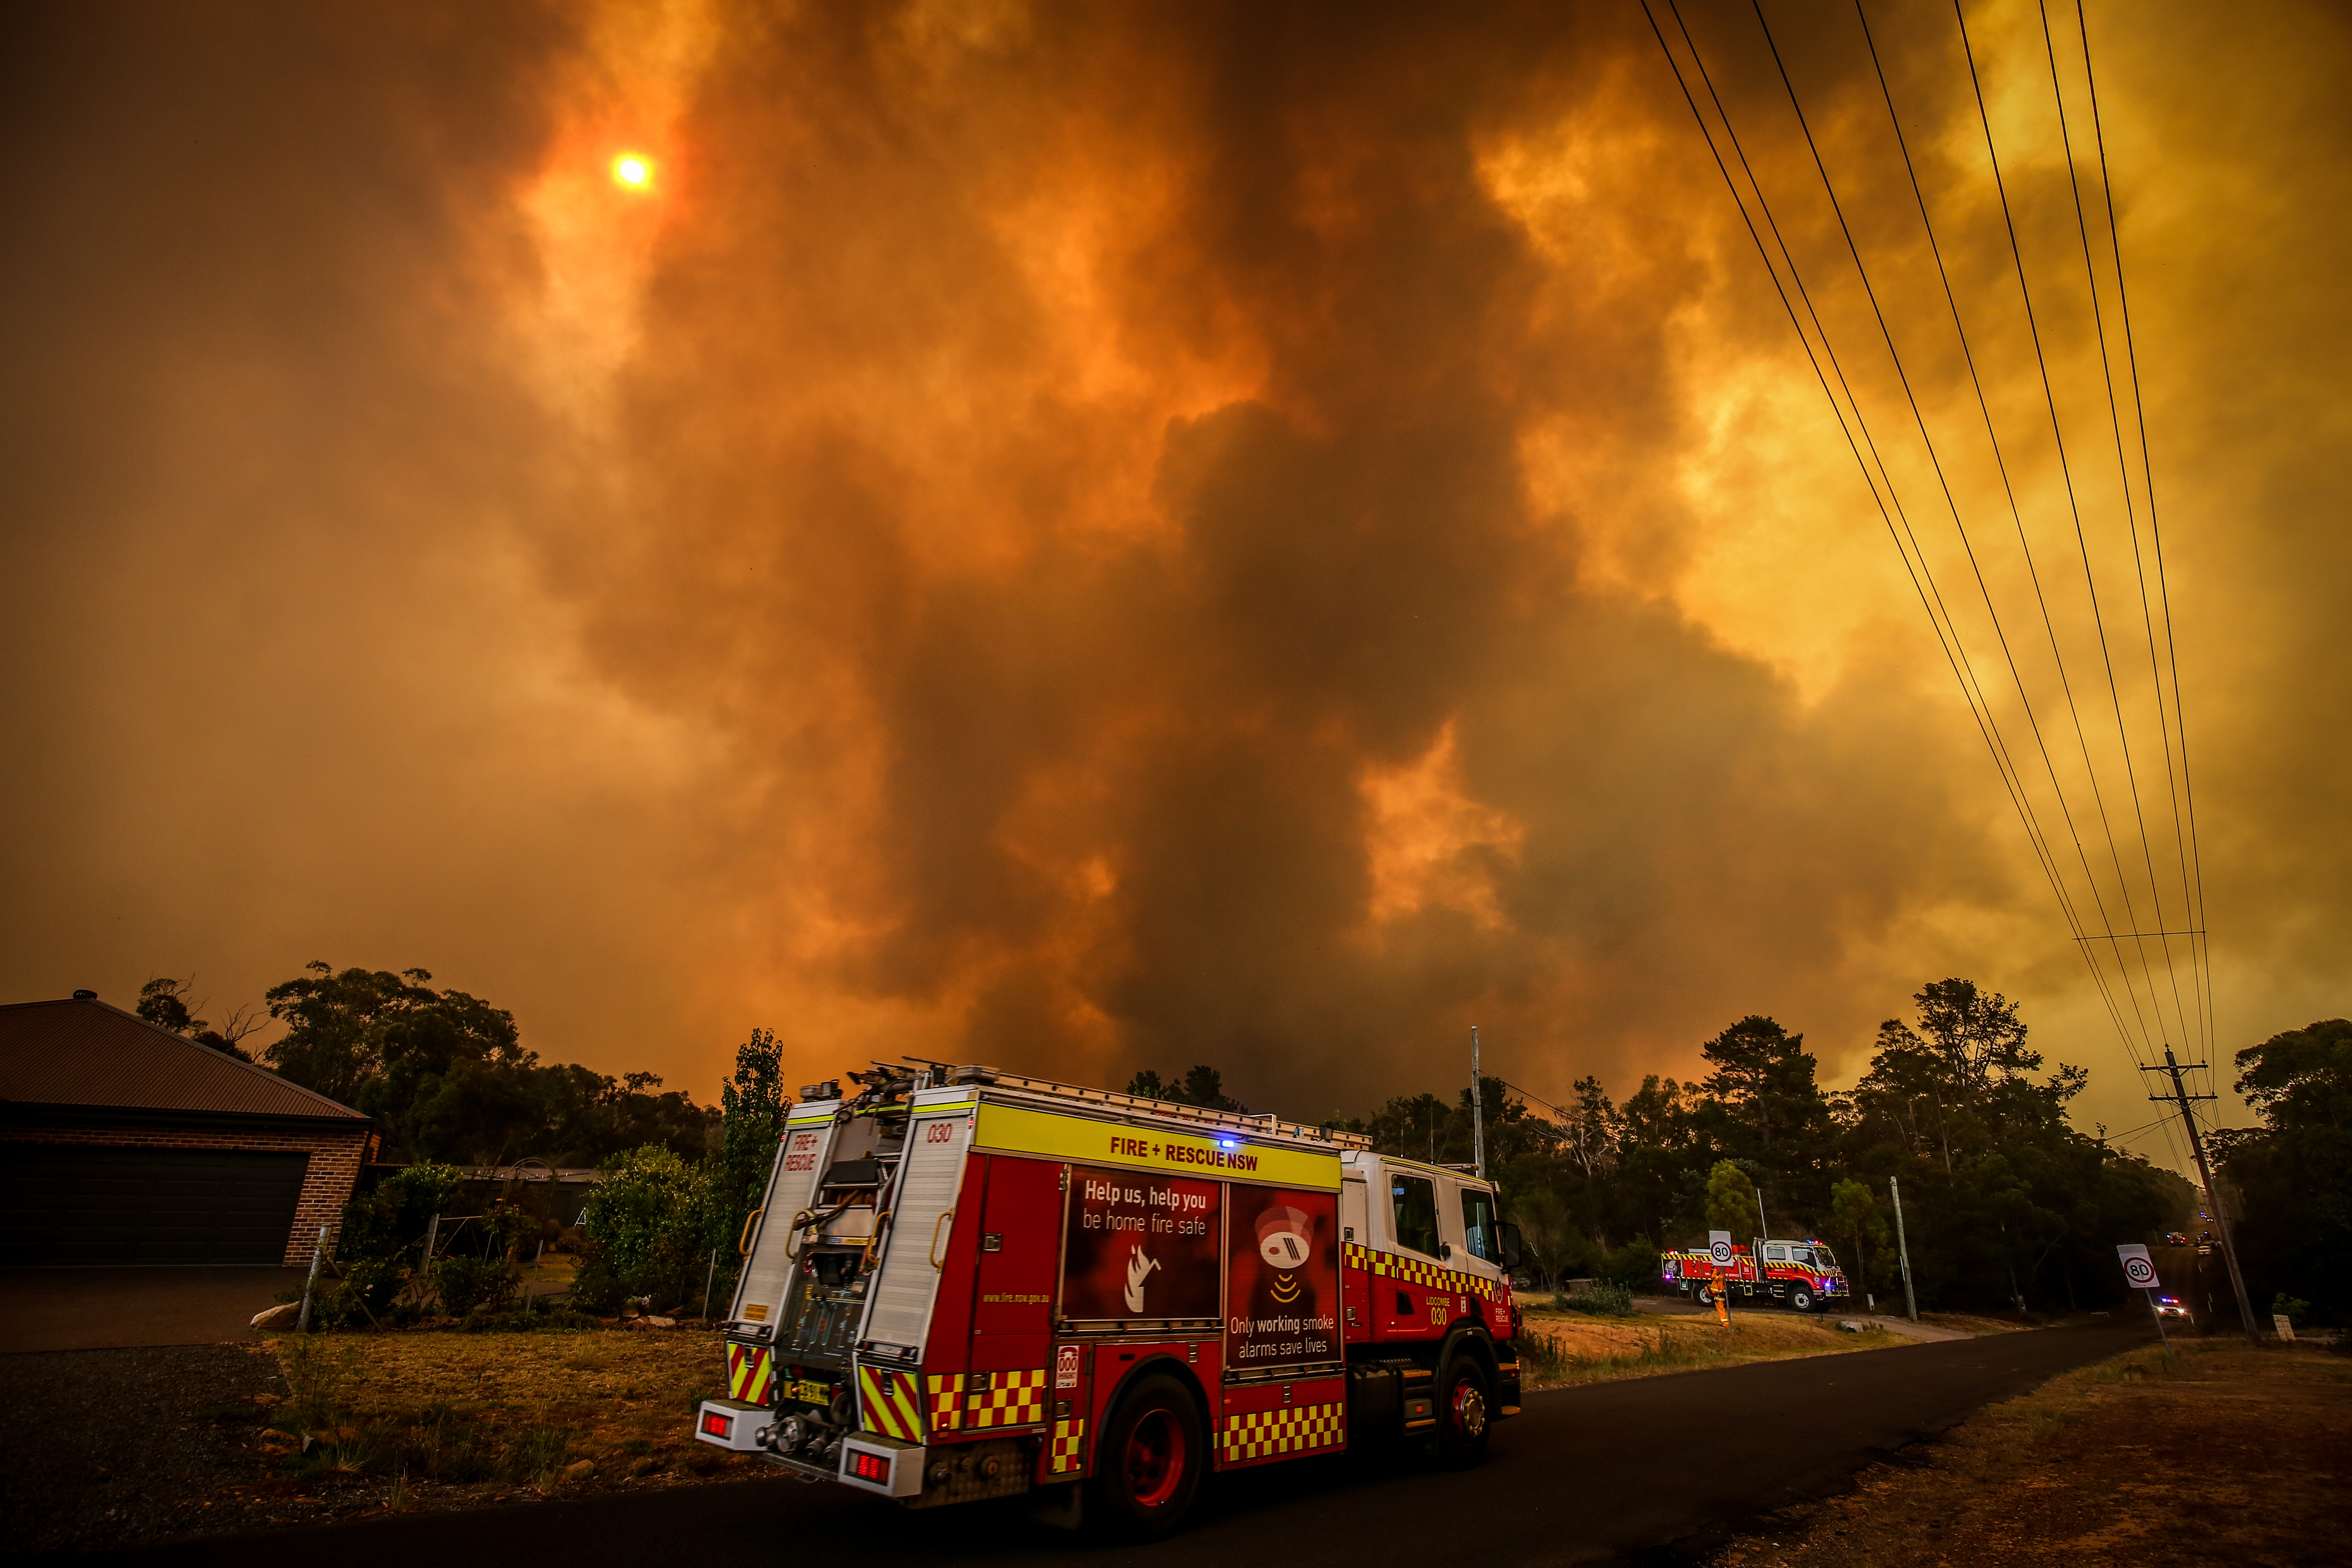 A bushfire approaches homes on the outskirts of the town of Bargo on December 21, 2019.